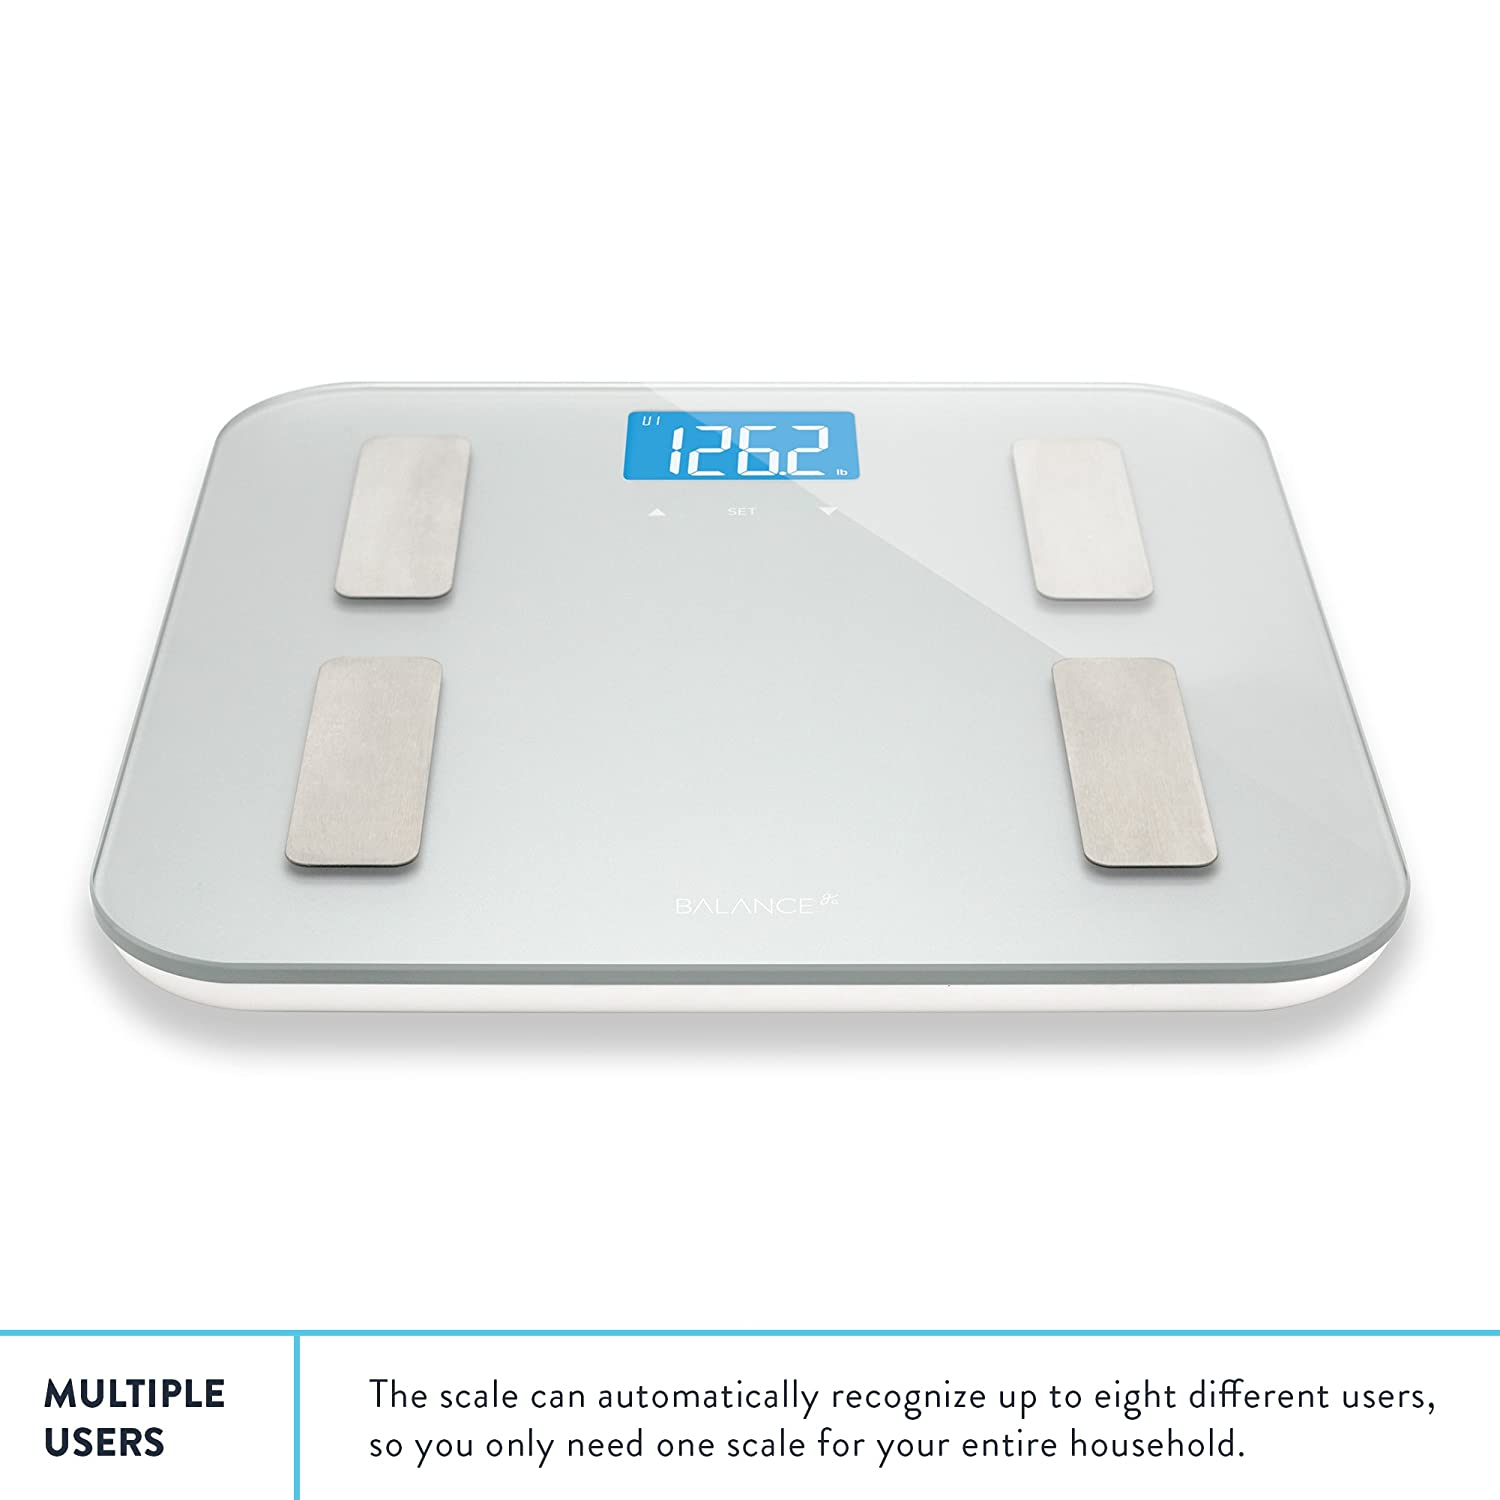 Bathroom scale accuracy consistency - Amazon Com Digital Body Fat Weight Scale By Balance Accurate Health Metrics Body Composition Weight Measurements Glass Top With Large Backlit